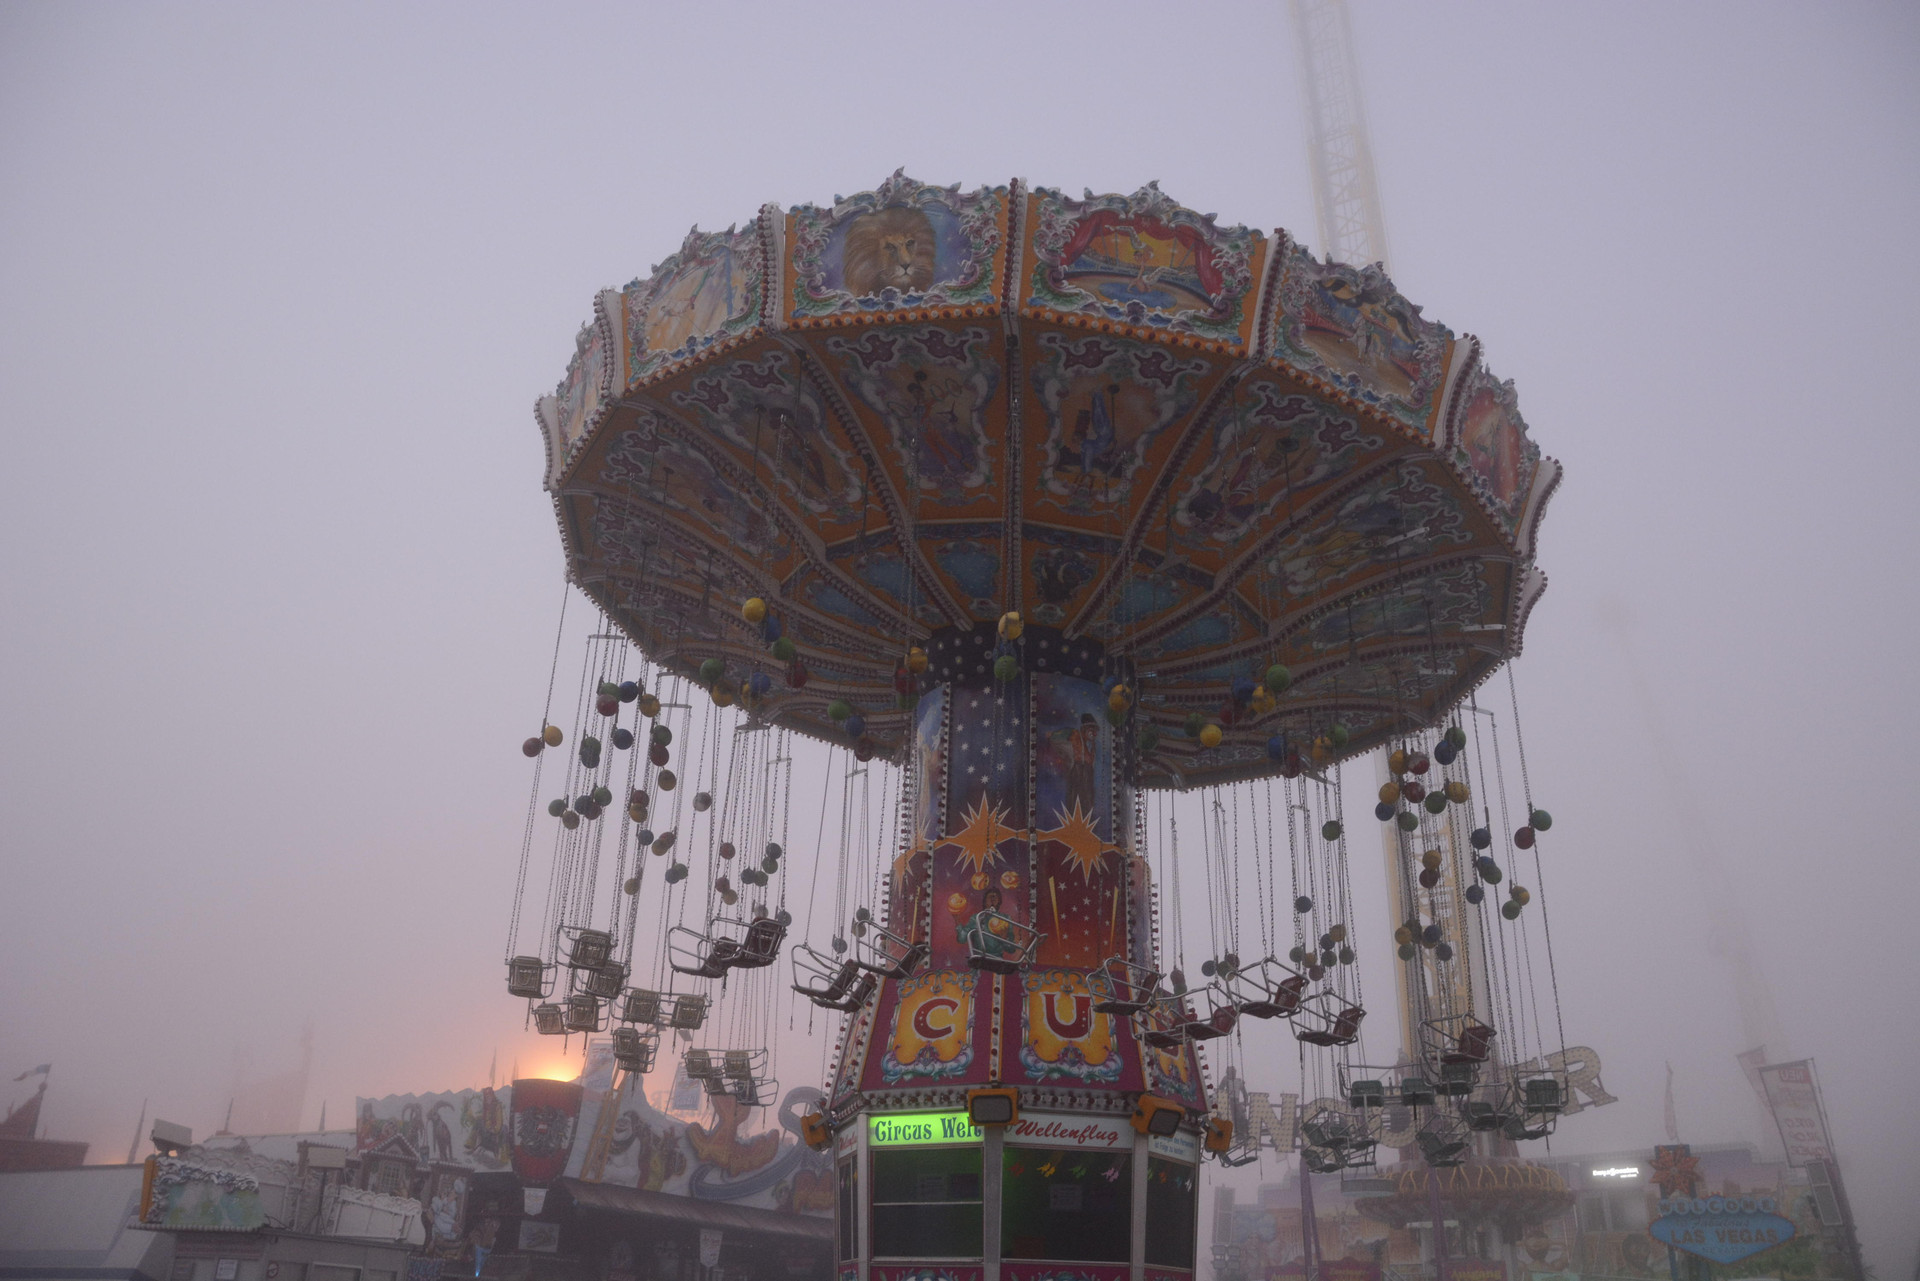 Fun at empty Funfairs.